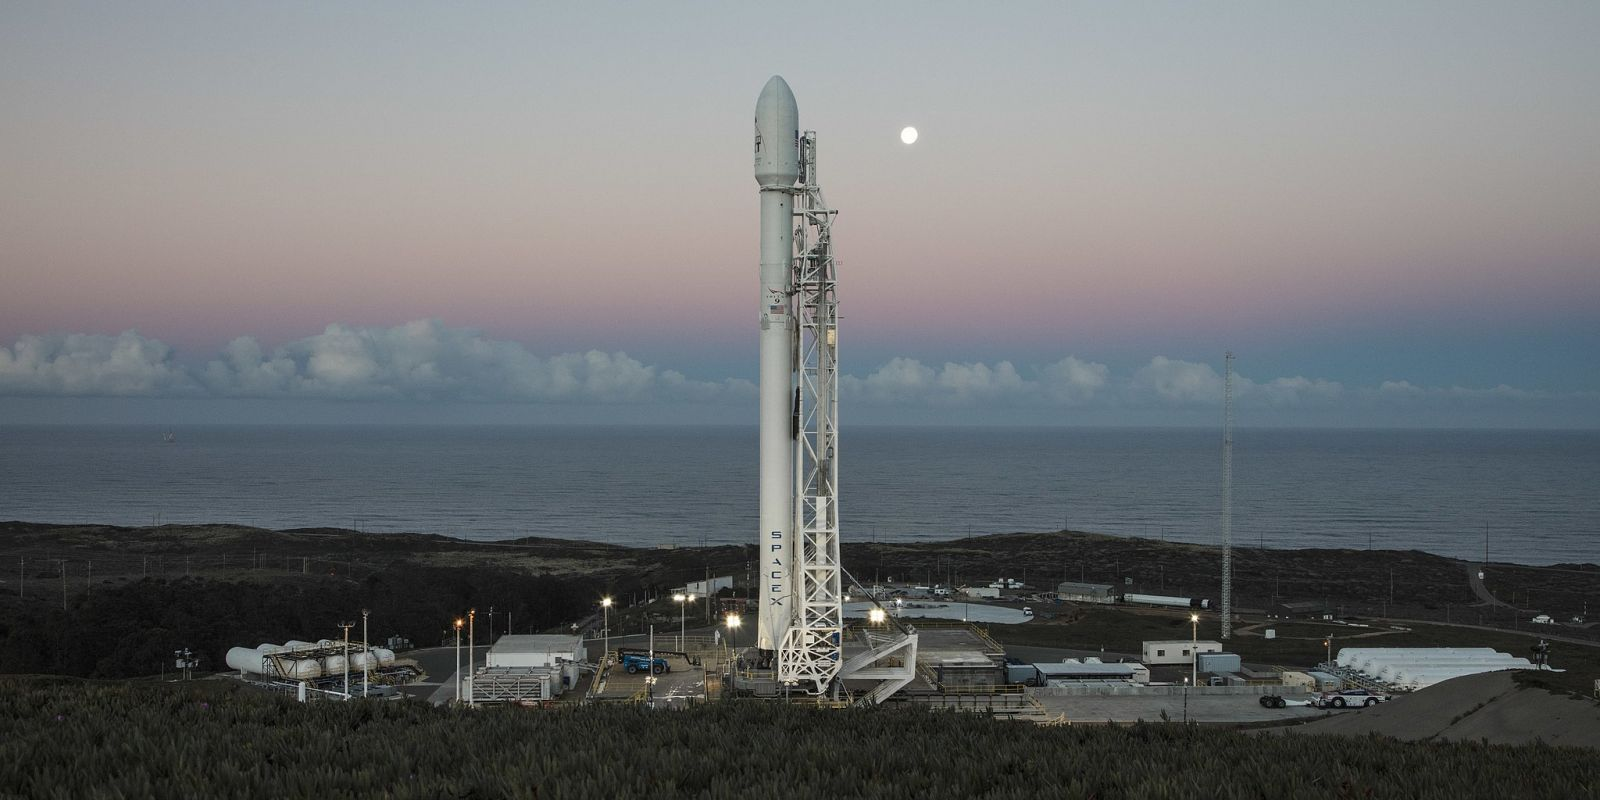 SpaceX Falcon 9 rocket with Iridium spacecraft preparing to launch from Vandenberg Air Force Base photo credit SpaceX